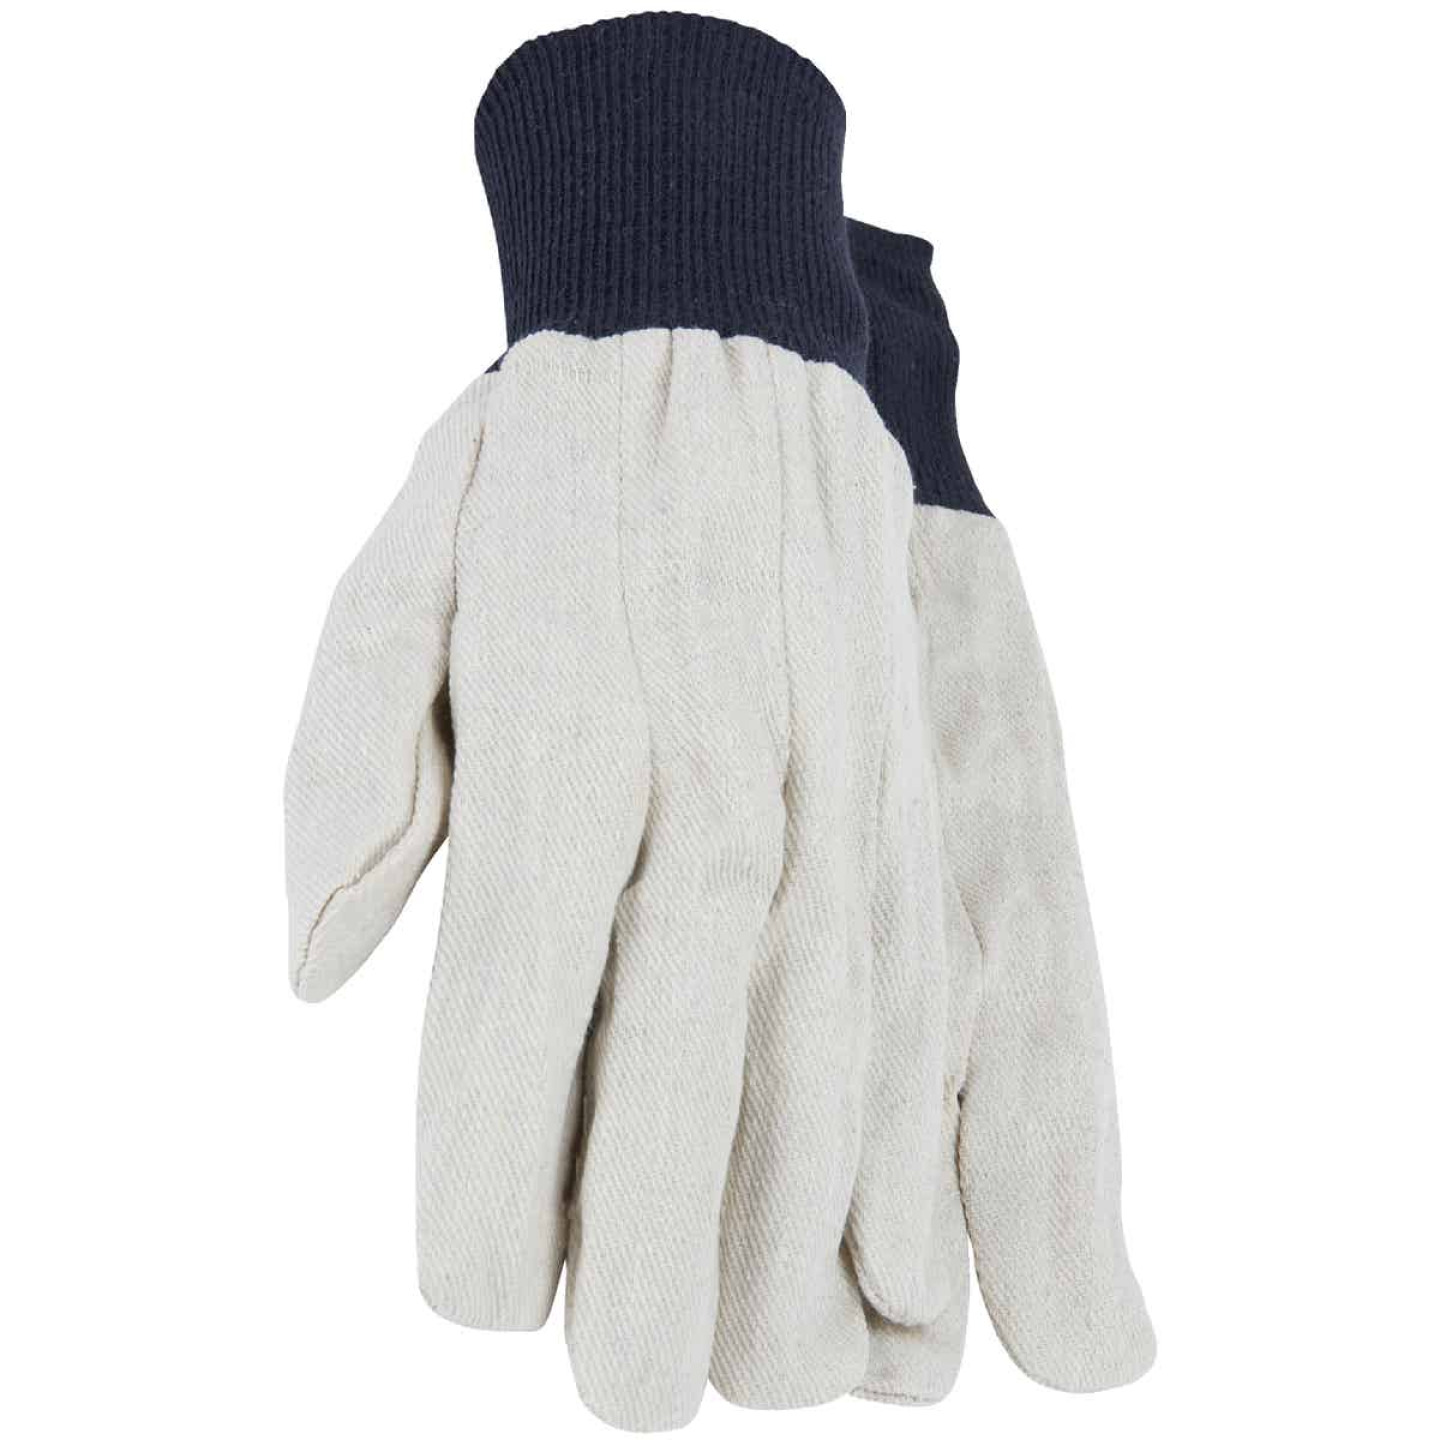 Do it Men's Large Cotton Canvas Work Glove (6-Pack) Image 1